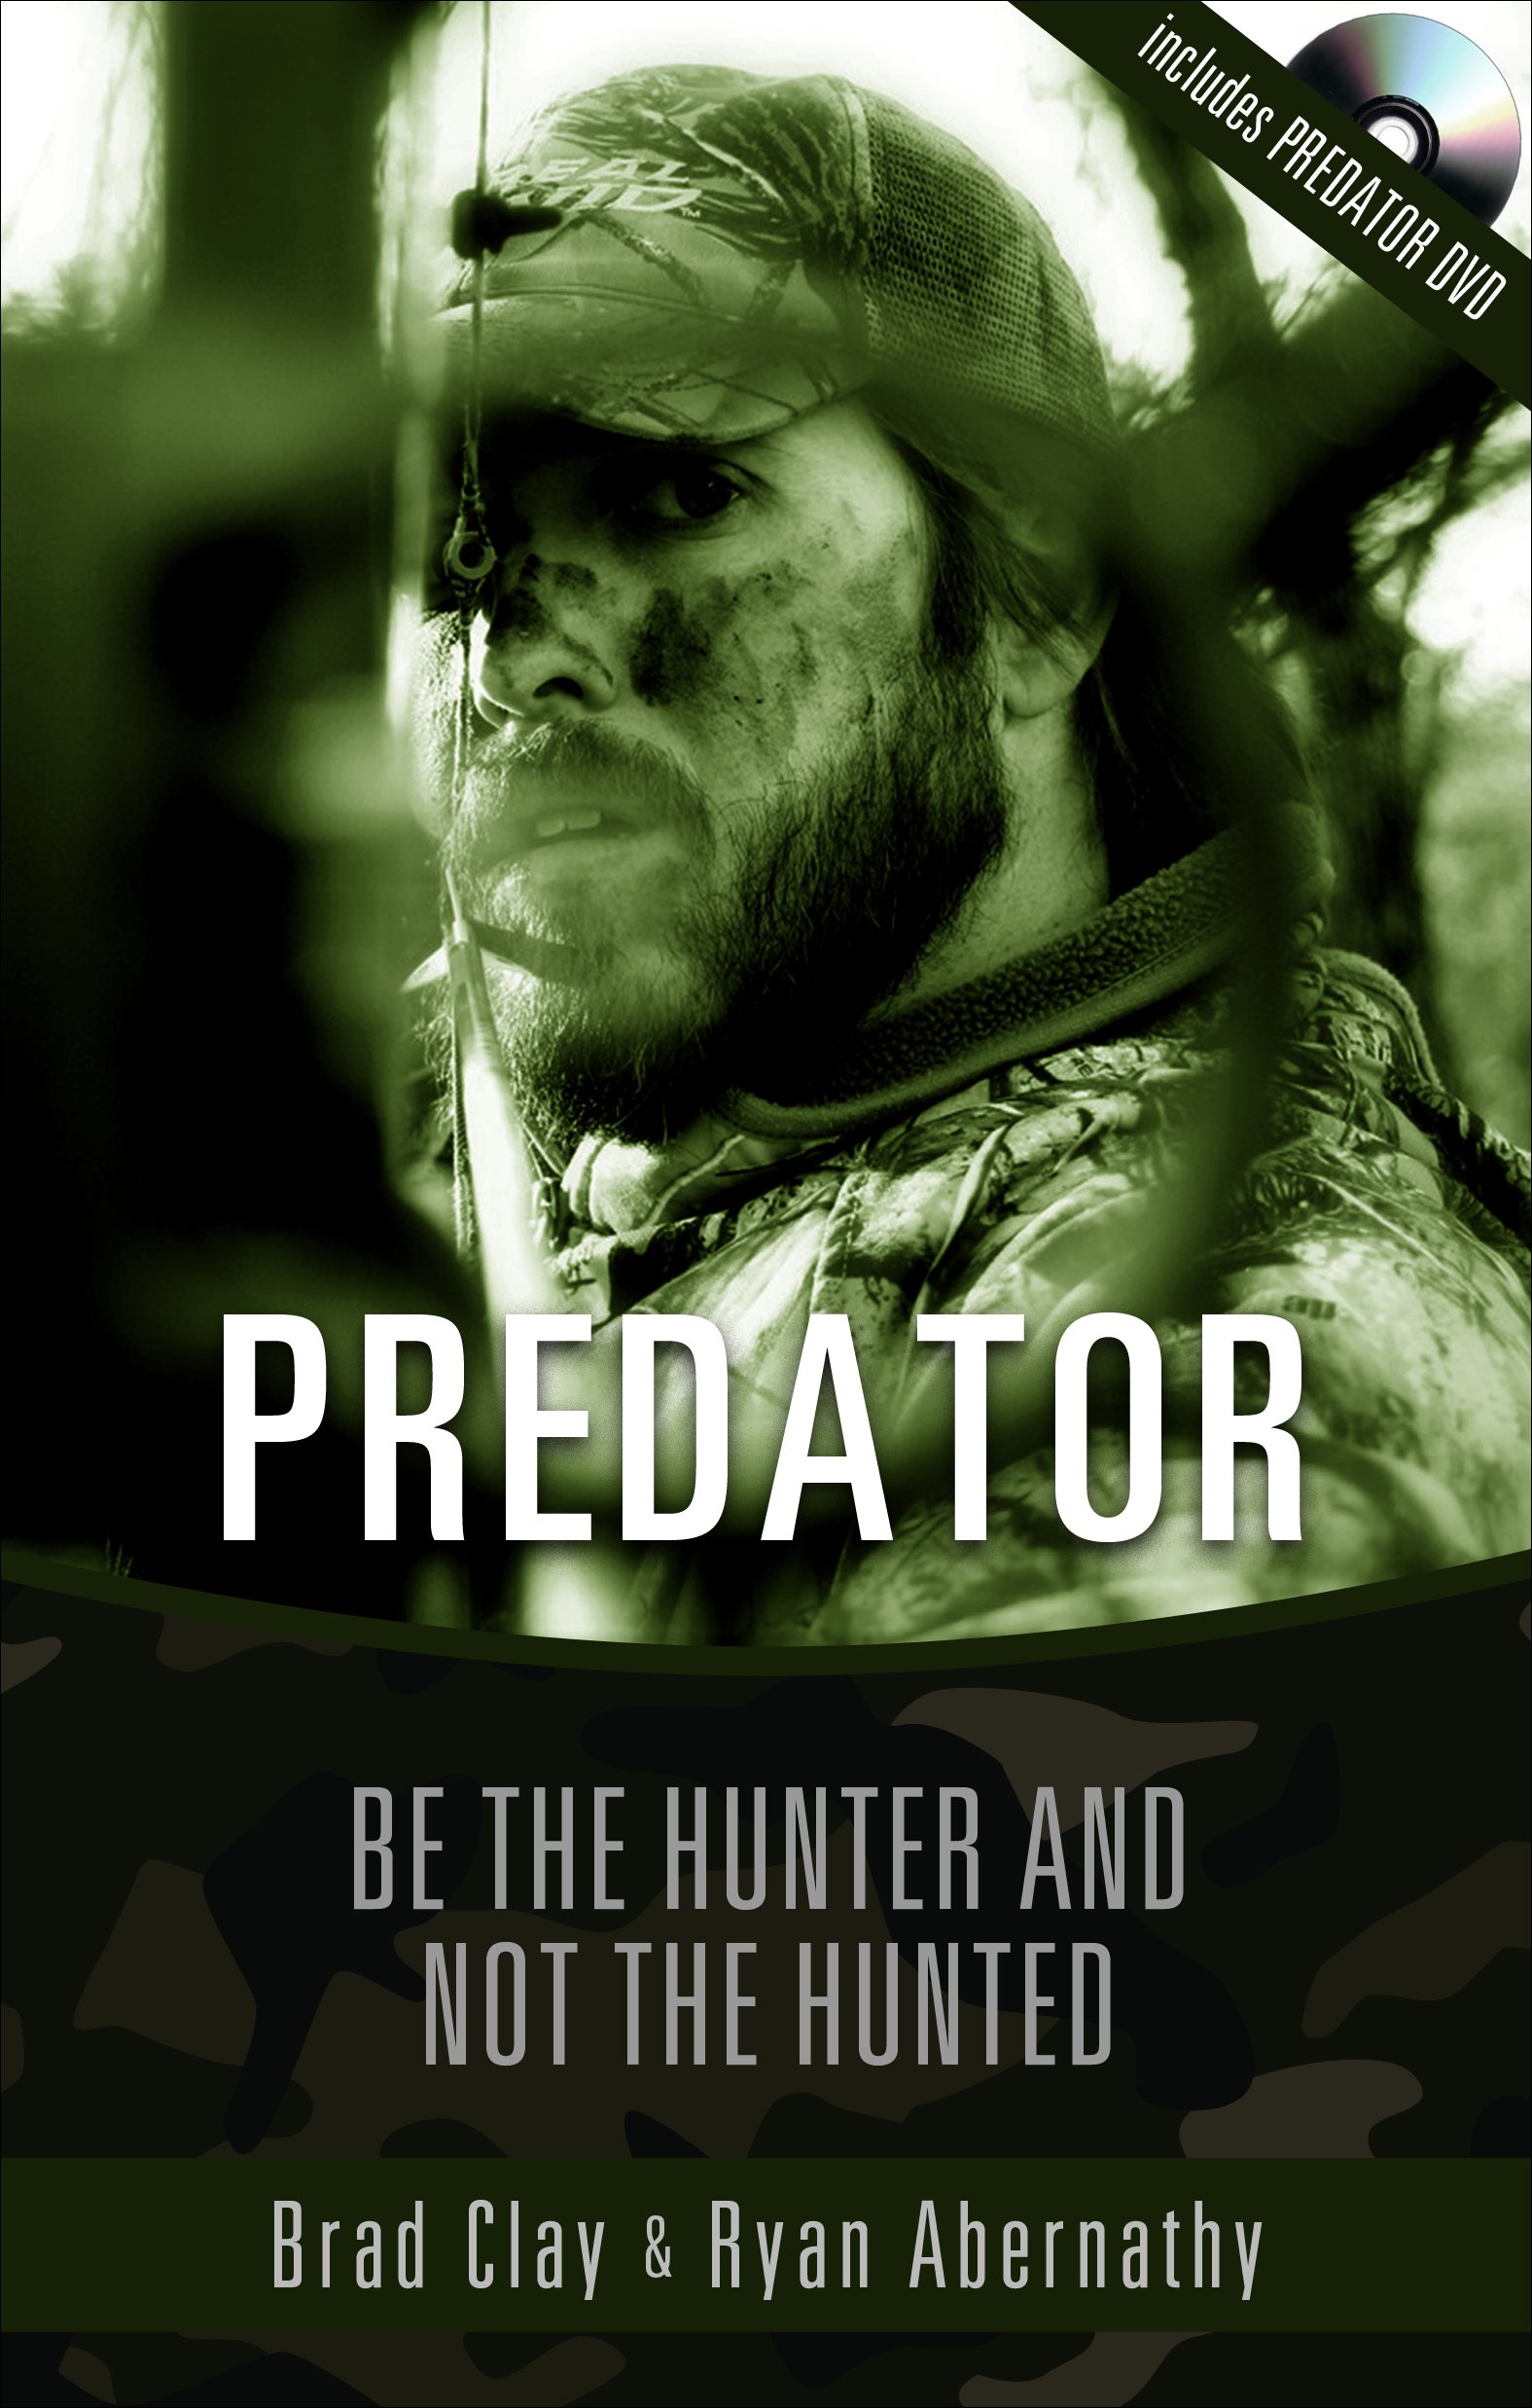 Image result for Predator be the hunter and not the hunted